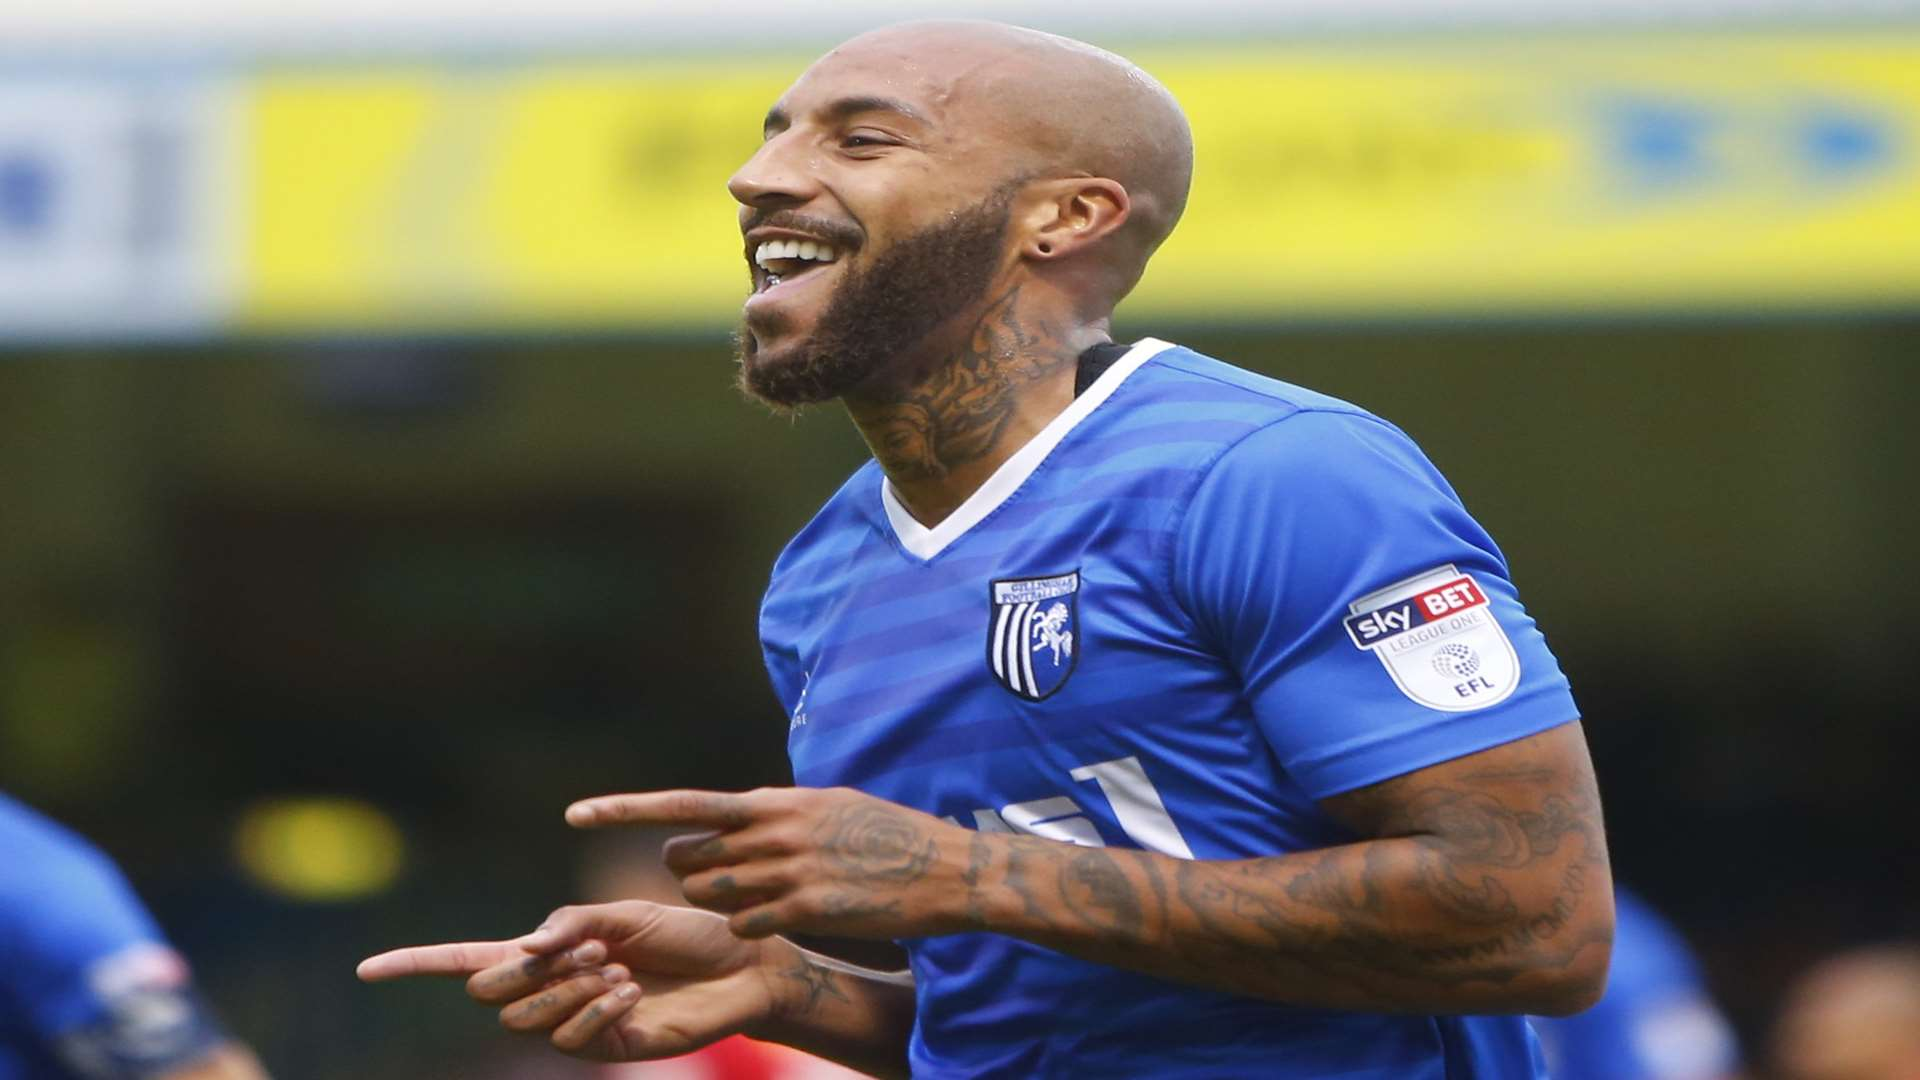 Josh Parker celebrates scoring Gillingham's first goal Picture: Andy Jones